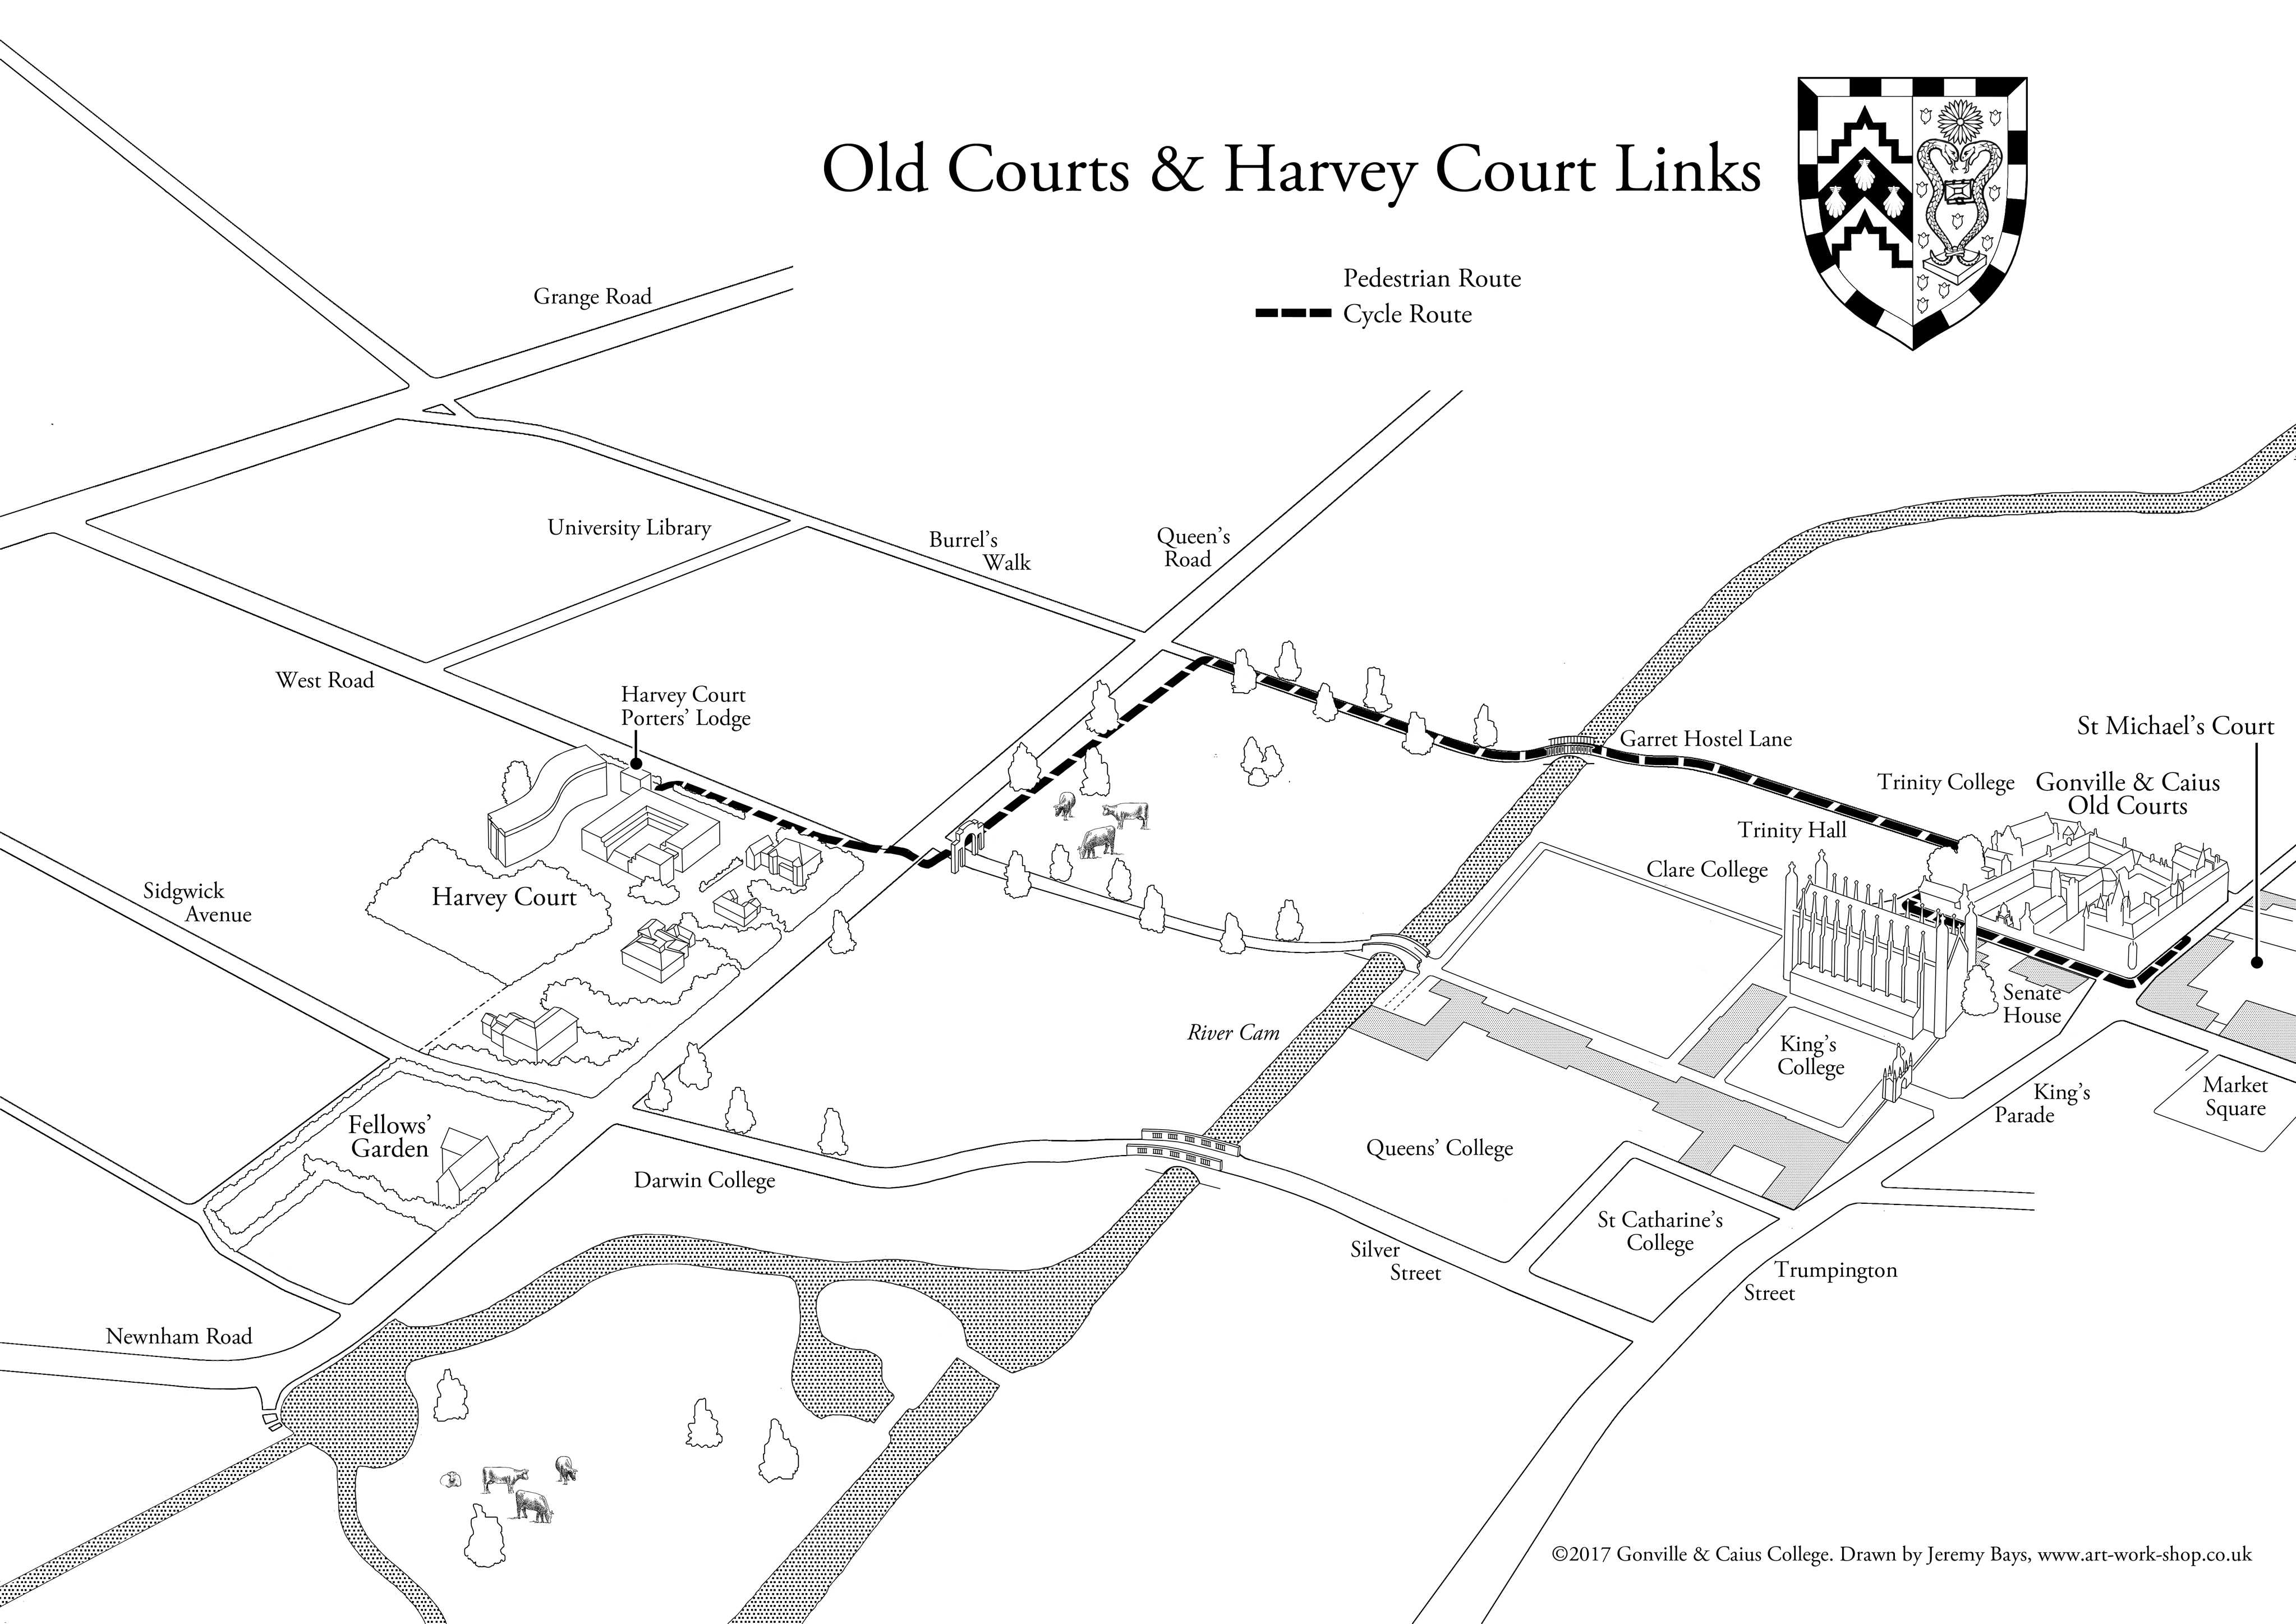 Walking route between Caius sites | Gonville & Caius on map a course, map a process, map a run, map a drive, map a path, map a distance, map a cut,